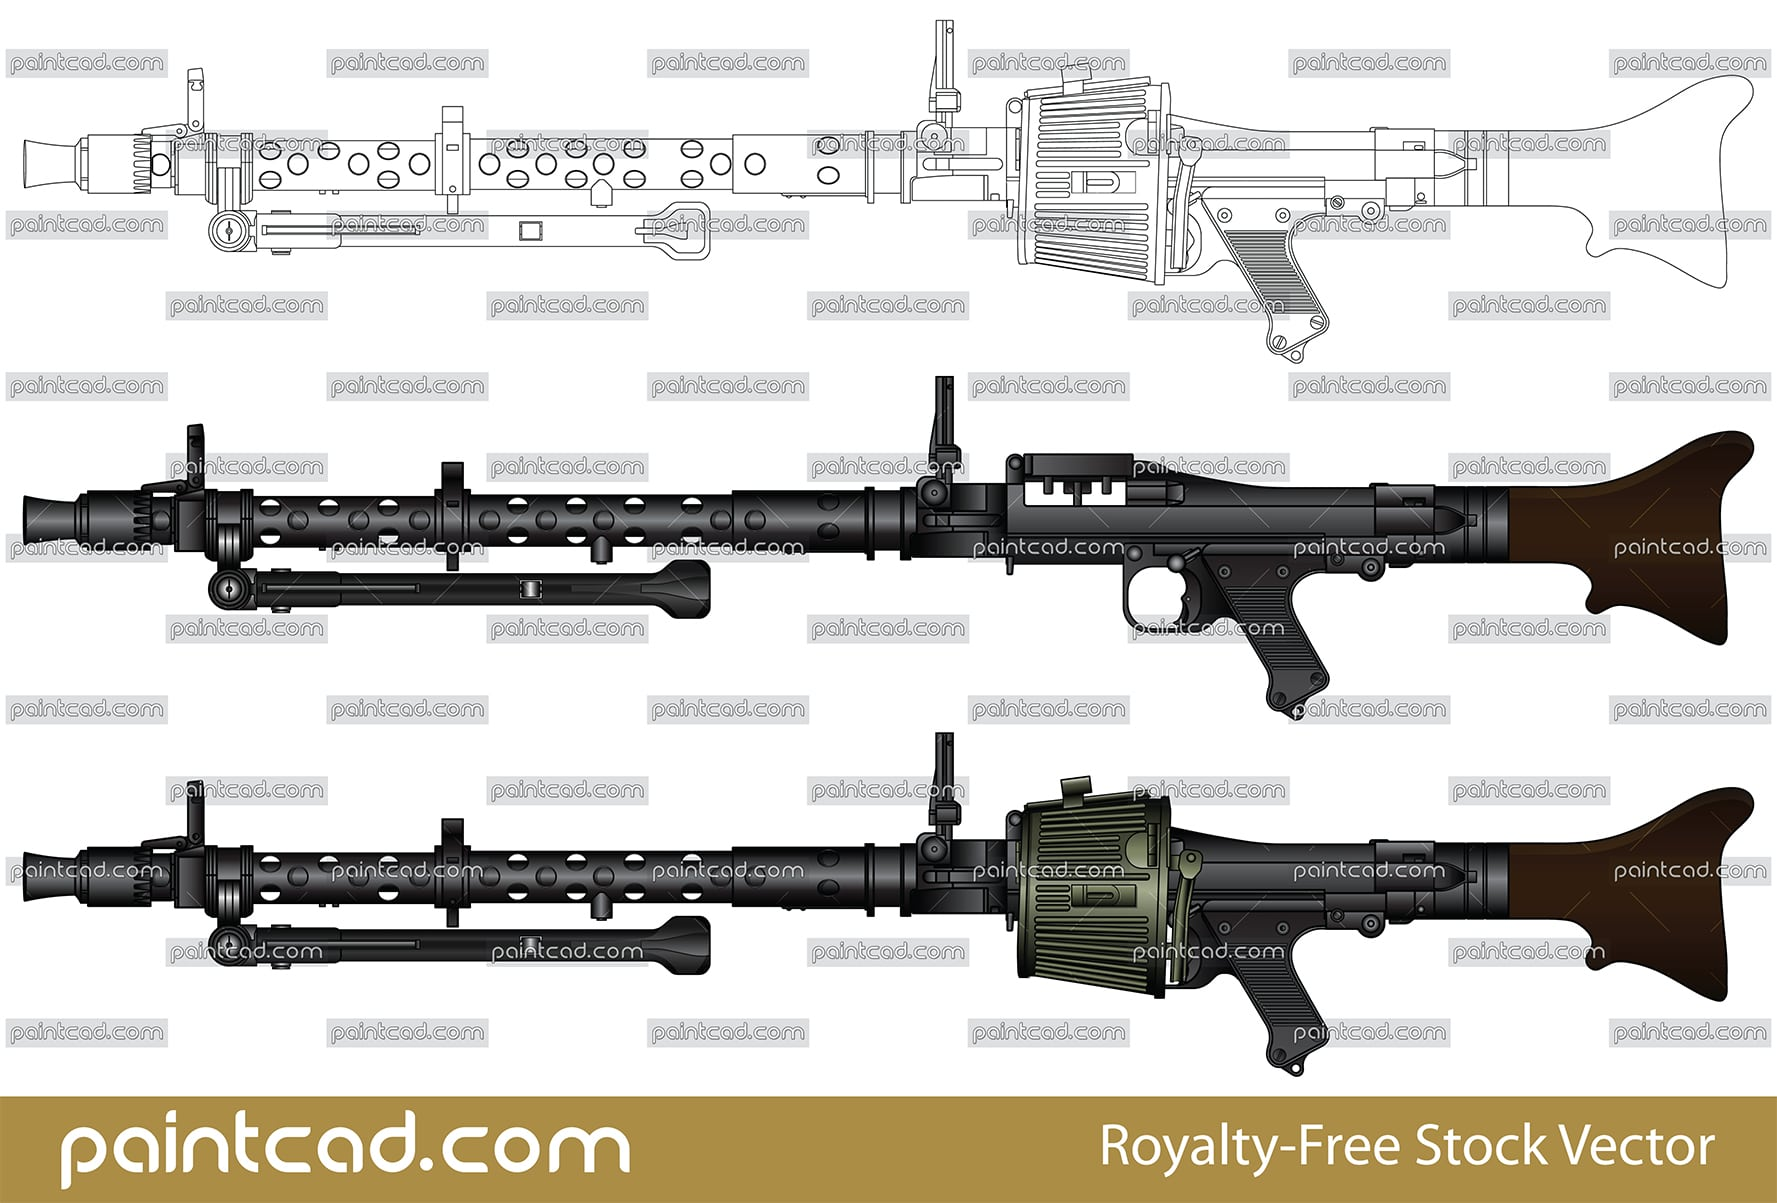 German machine gun Maschinengewehr MG 34 from World War II - vector illustration